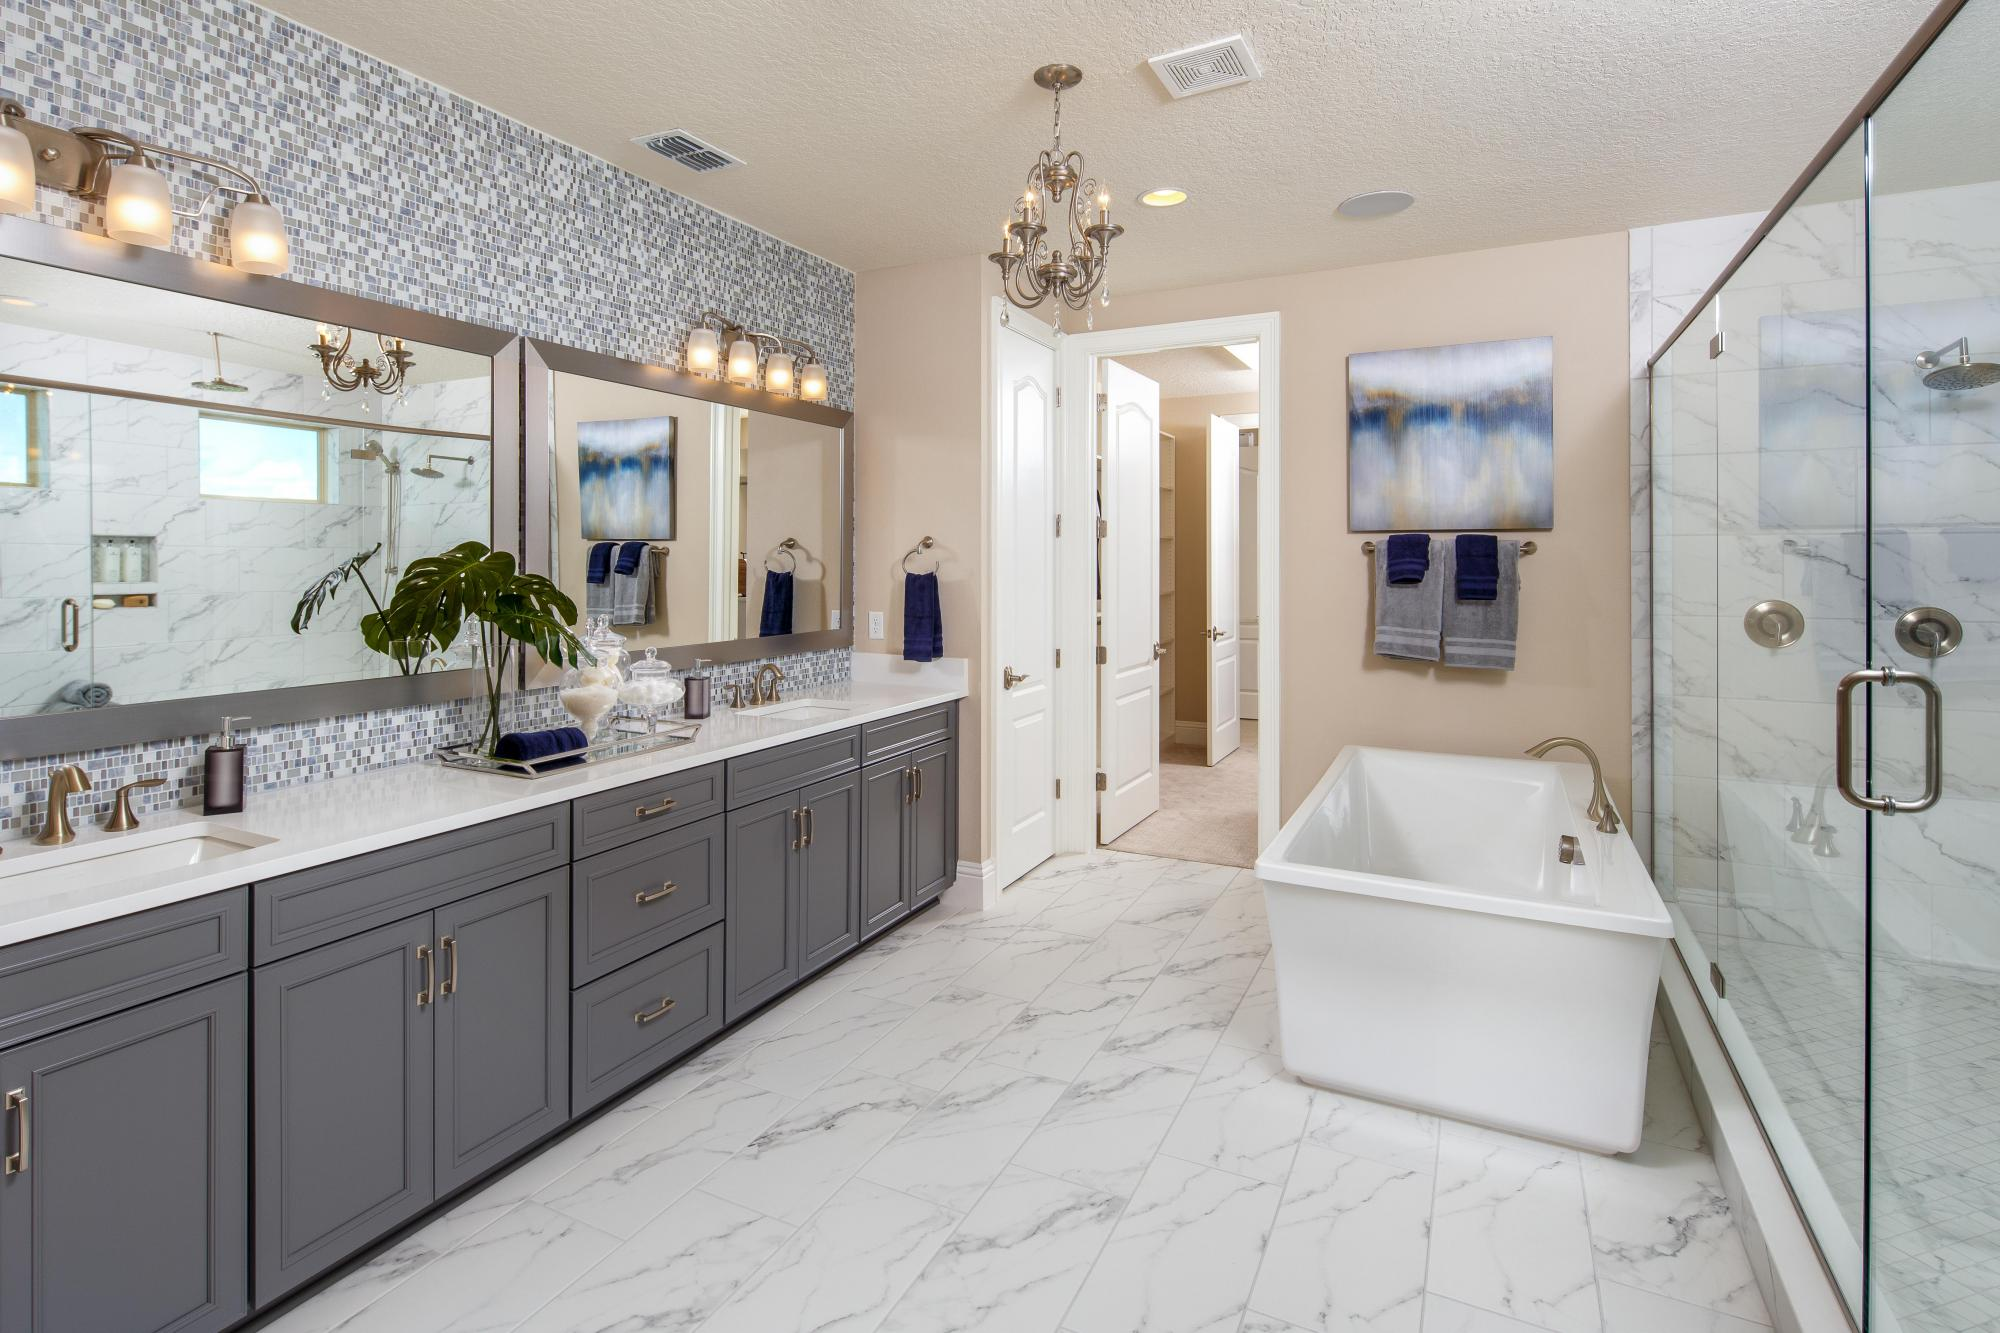 979518426582217_avalon_cove_master_bath.